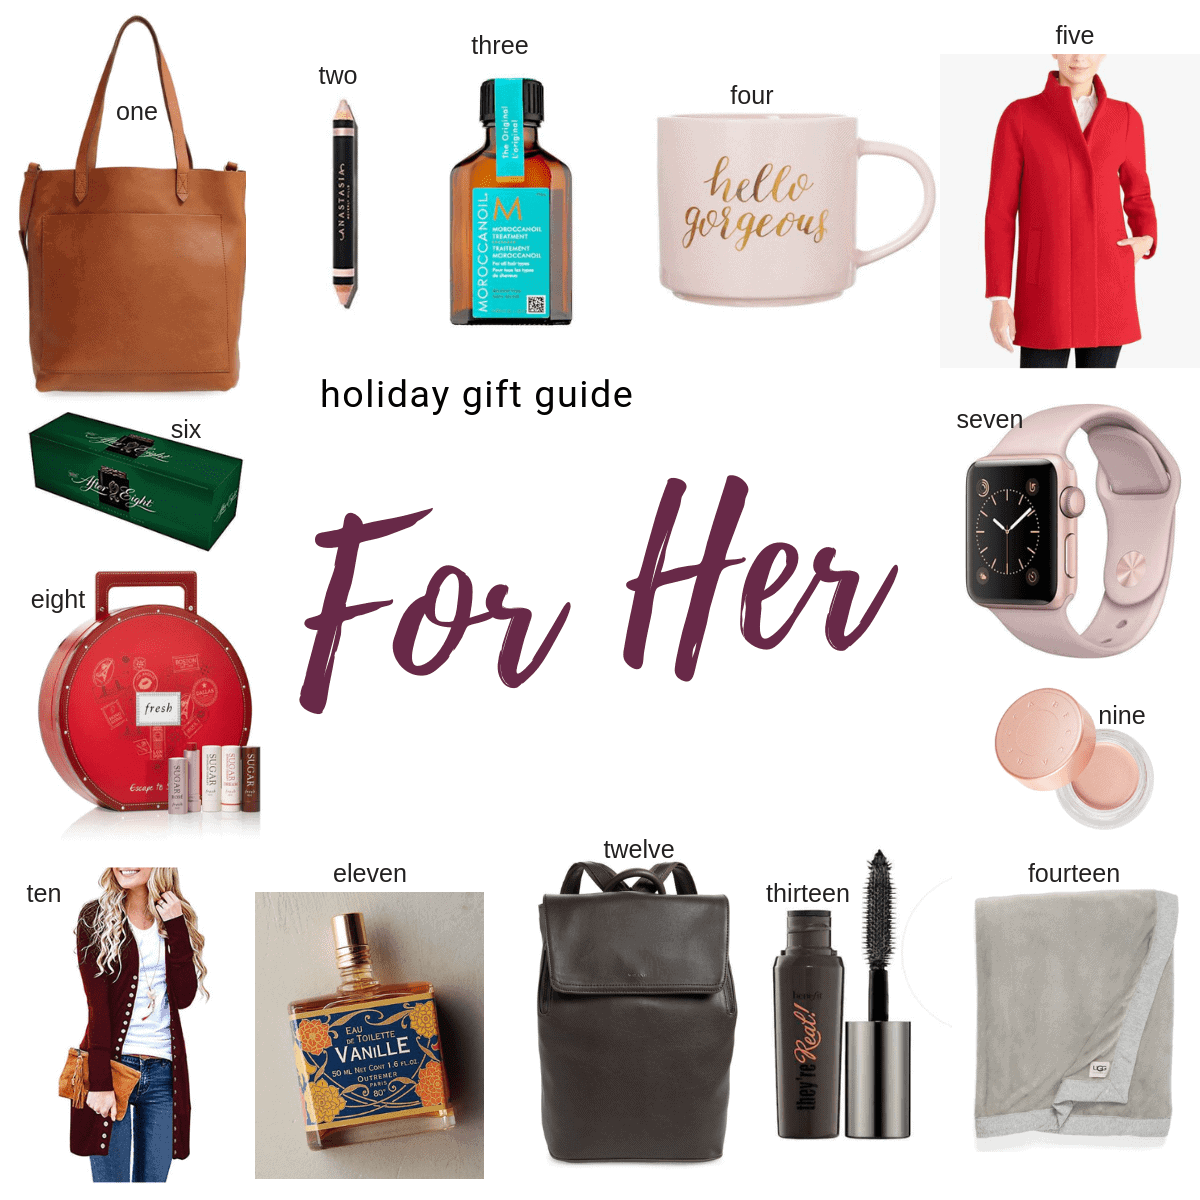 For her Gift Guide Items